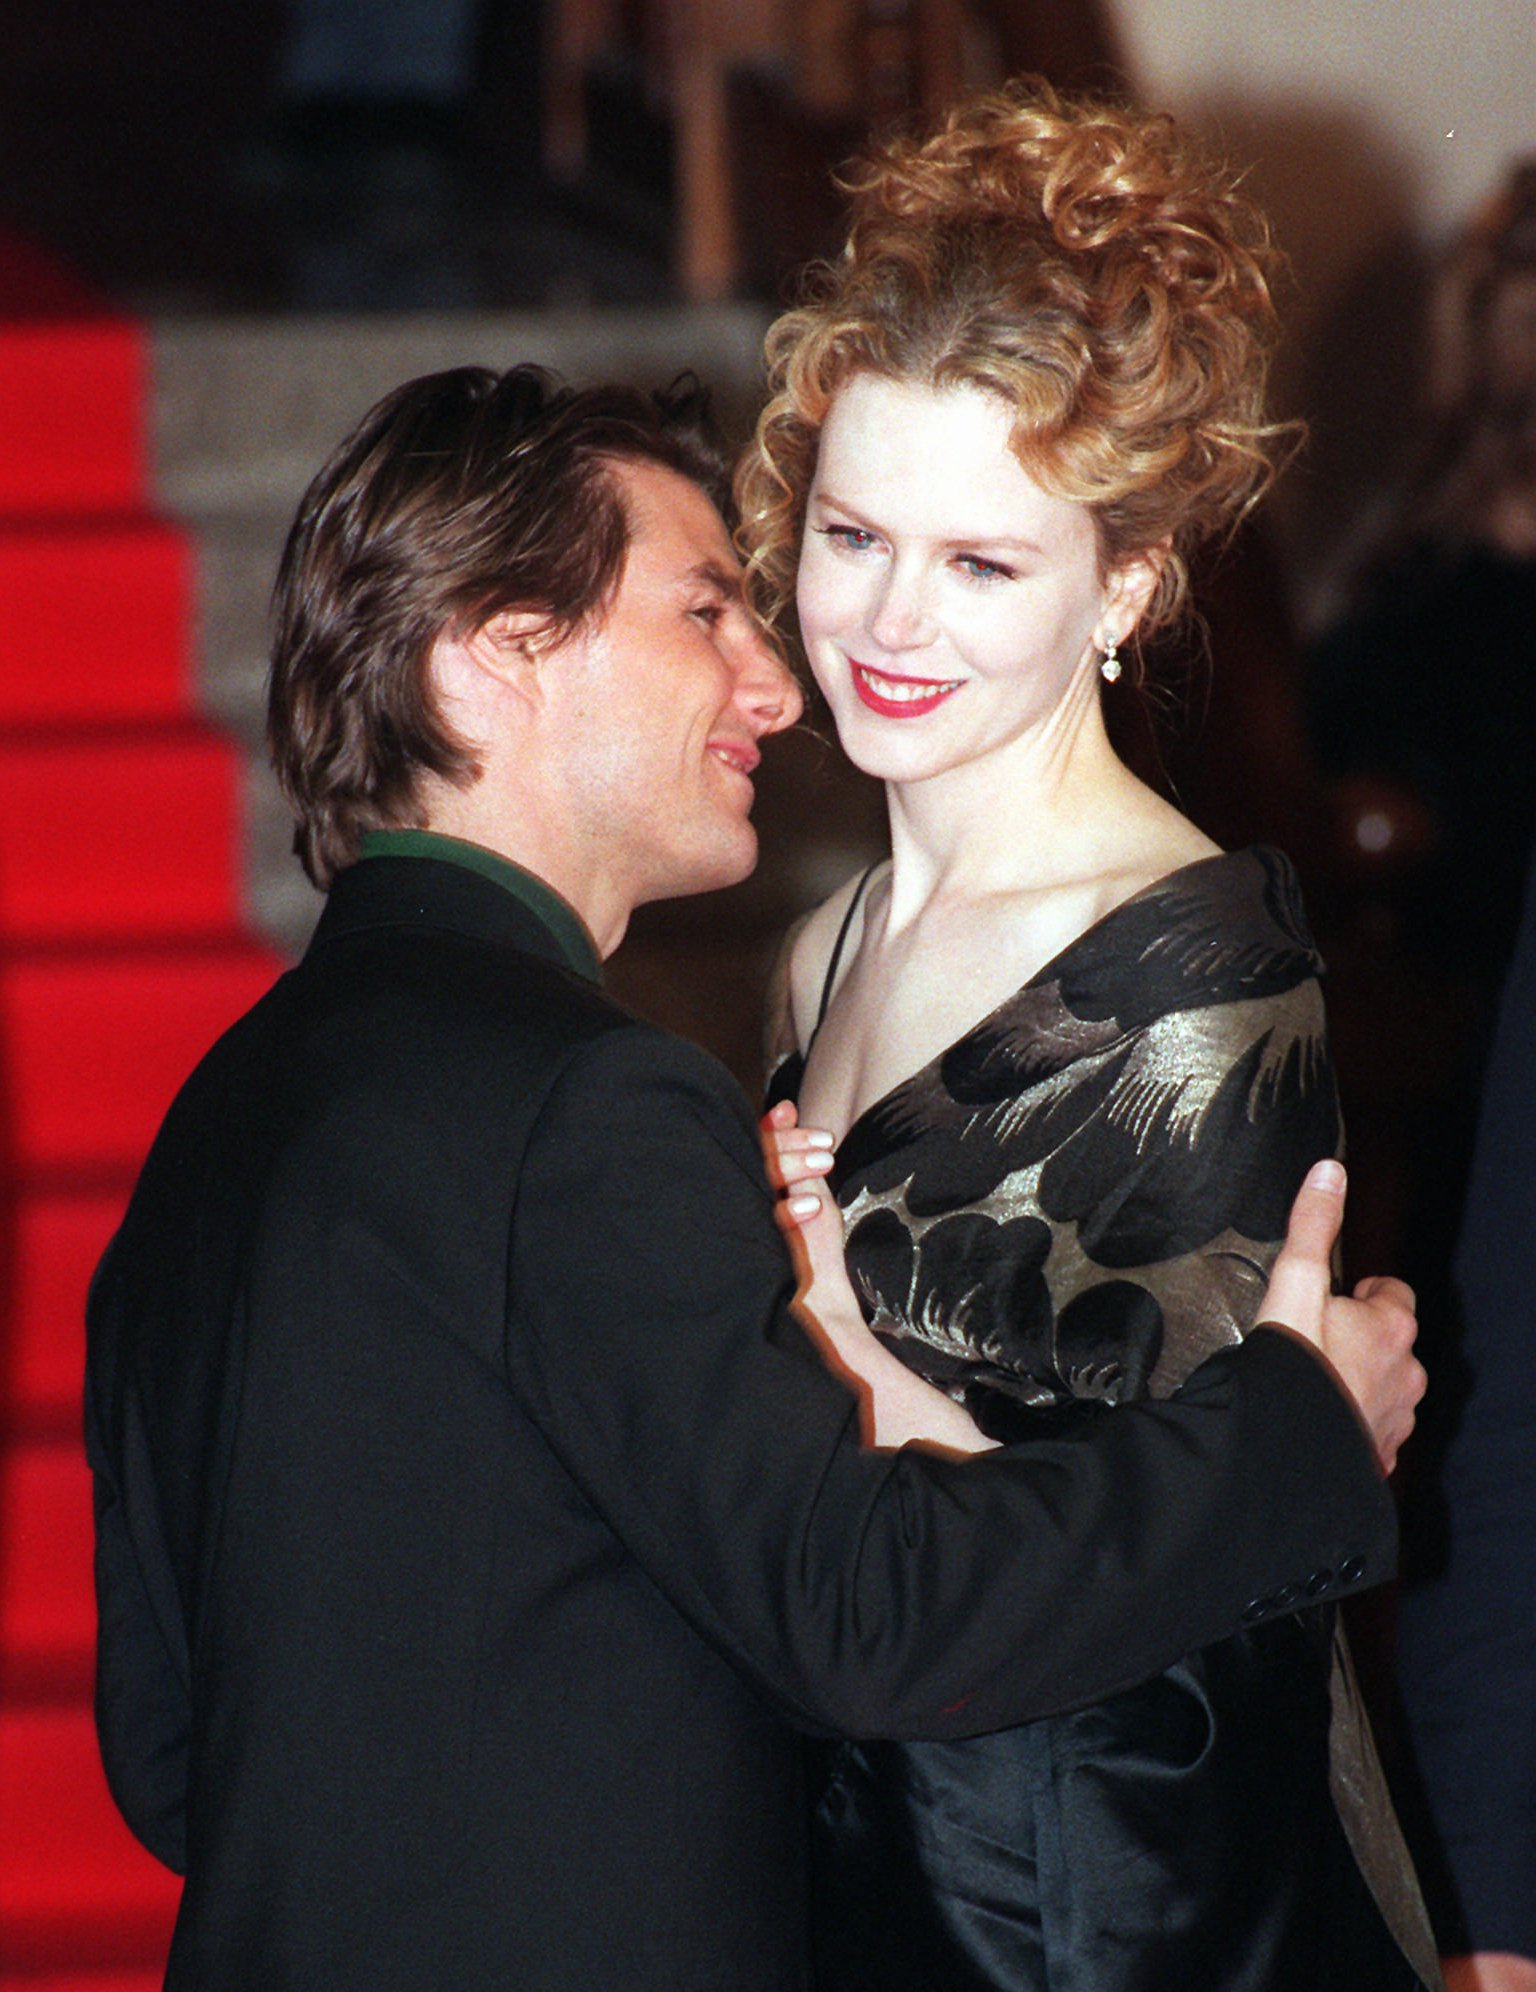 Cruise and his then- wife Nicole Kidman pose for photographers as they arrive at the Italian premiere of his movie Jerry Maguire in 1997.